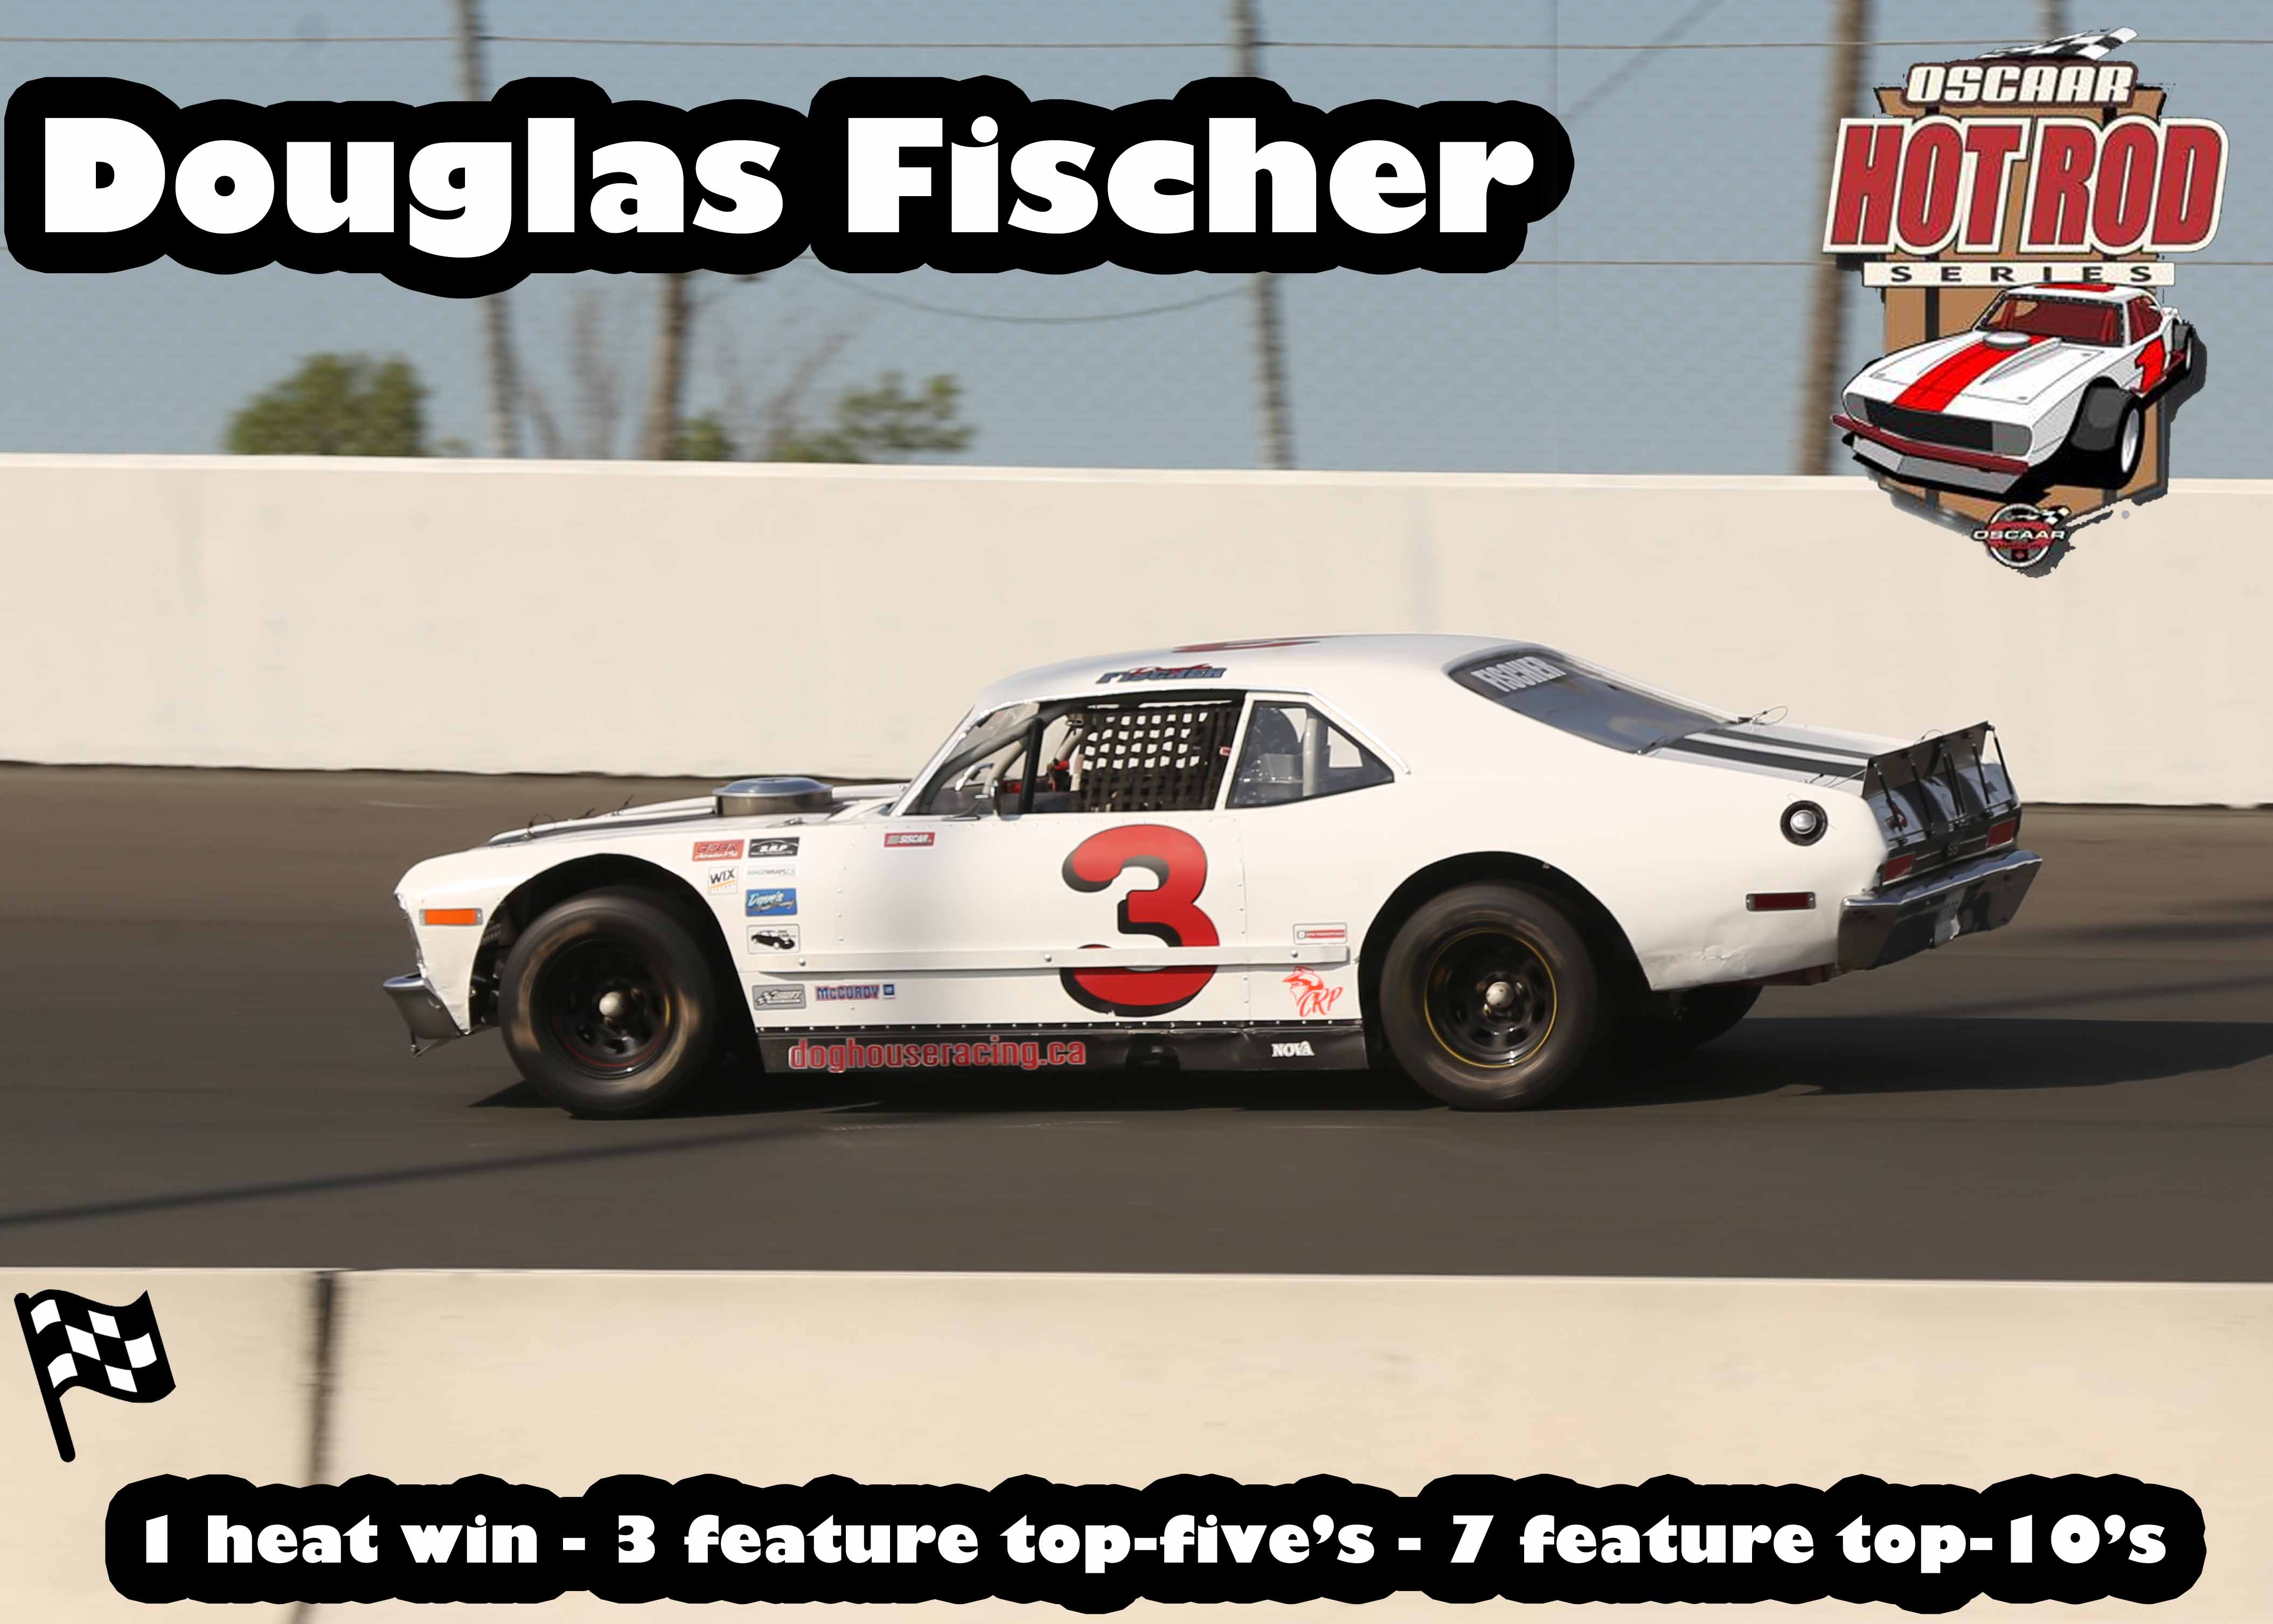 4th Hot Rod Douglas Fischer